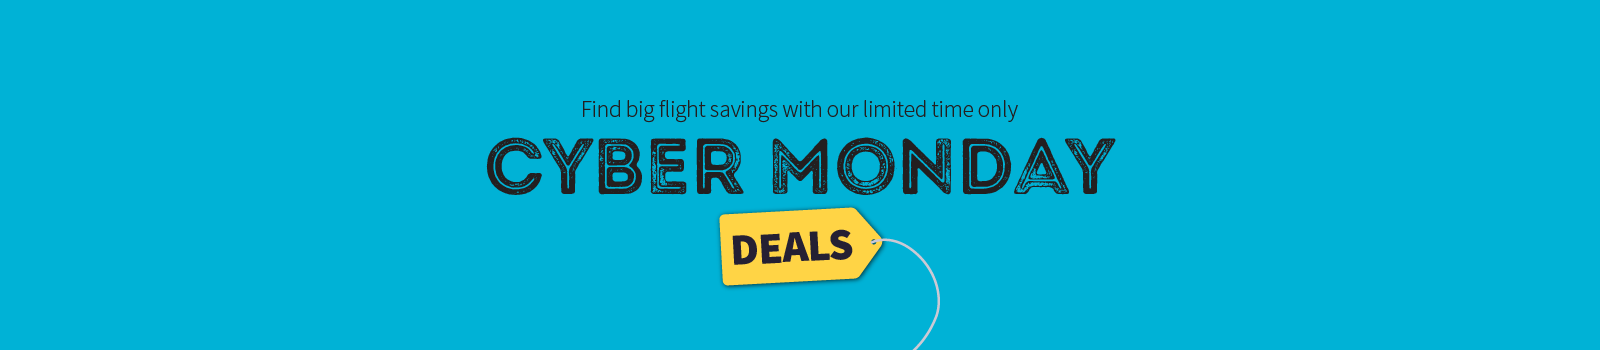 Cyber Monday Flight Deals Are Being Announced